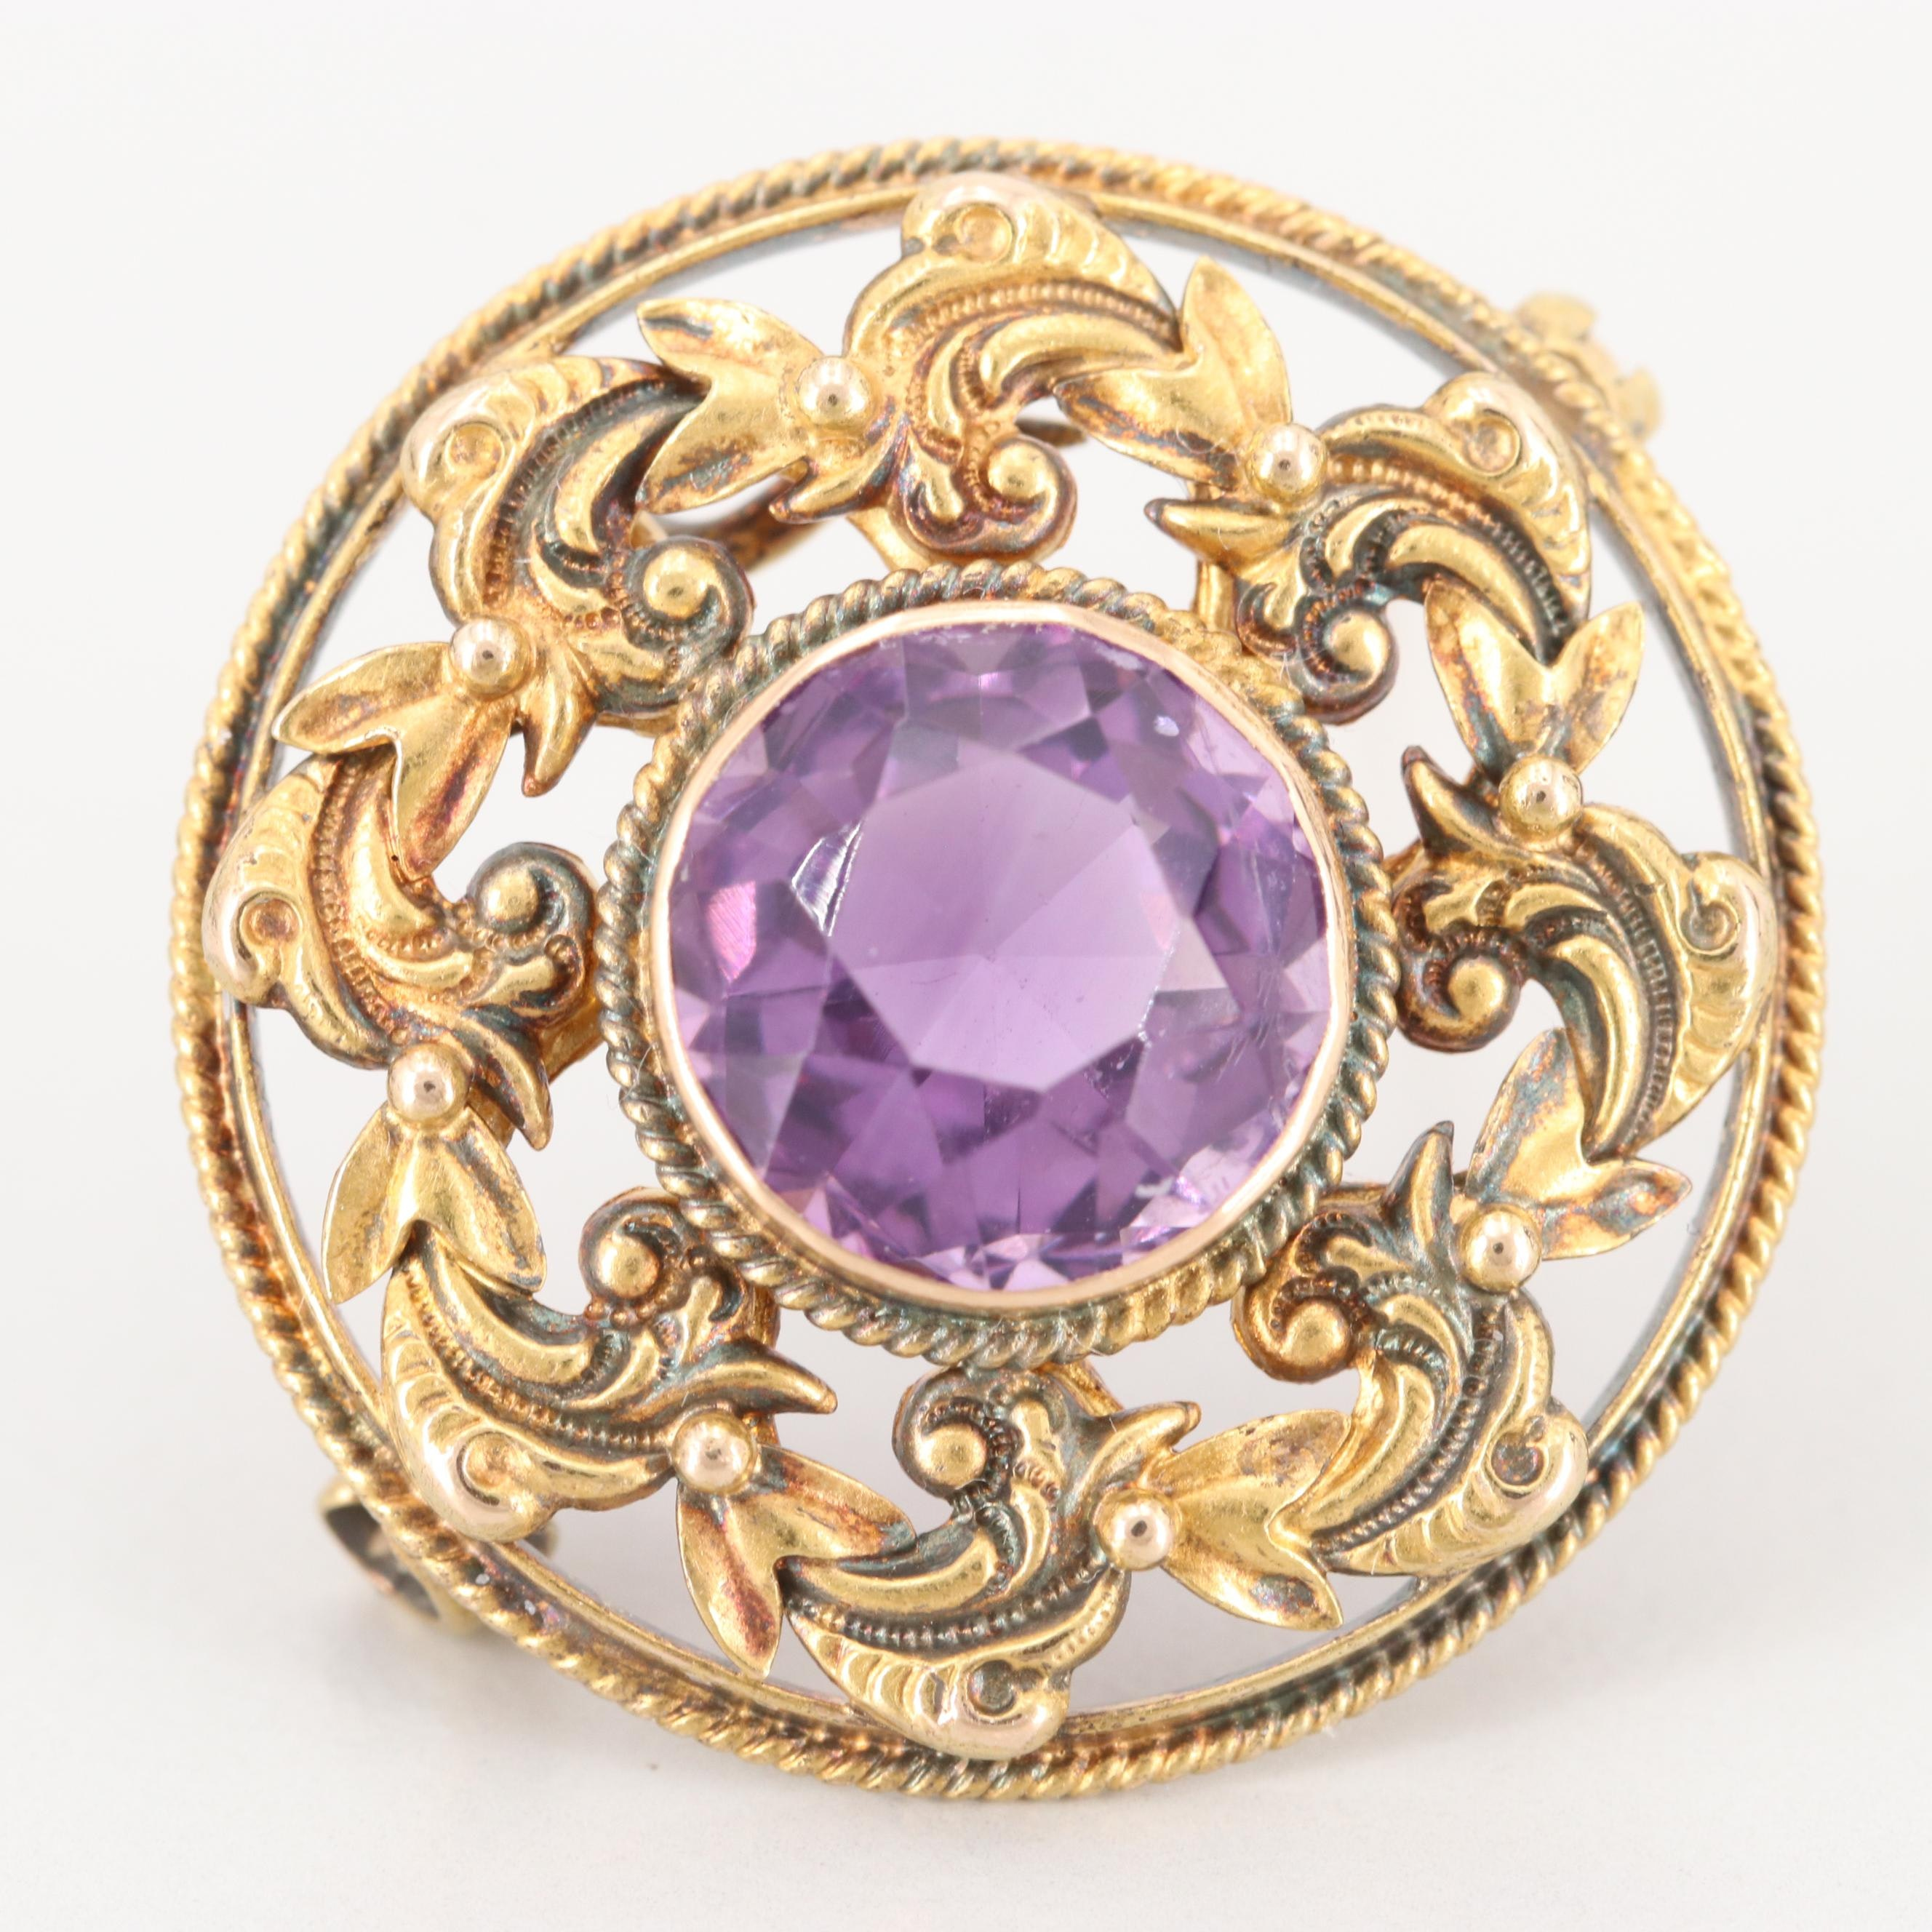 Late Victorian 14K Yellow Gold Amethyst Converter Brooch